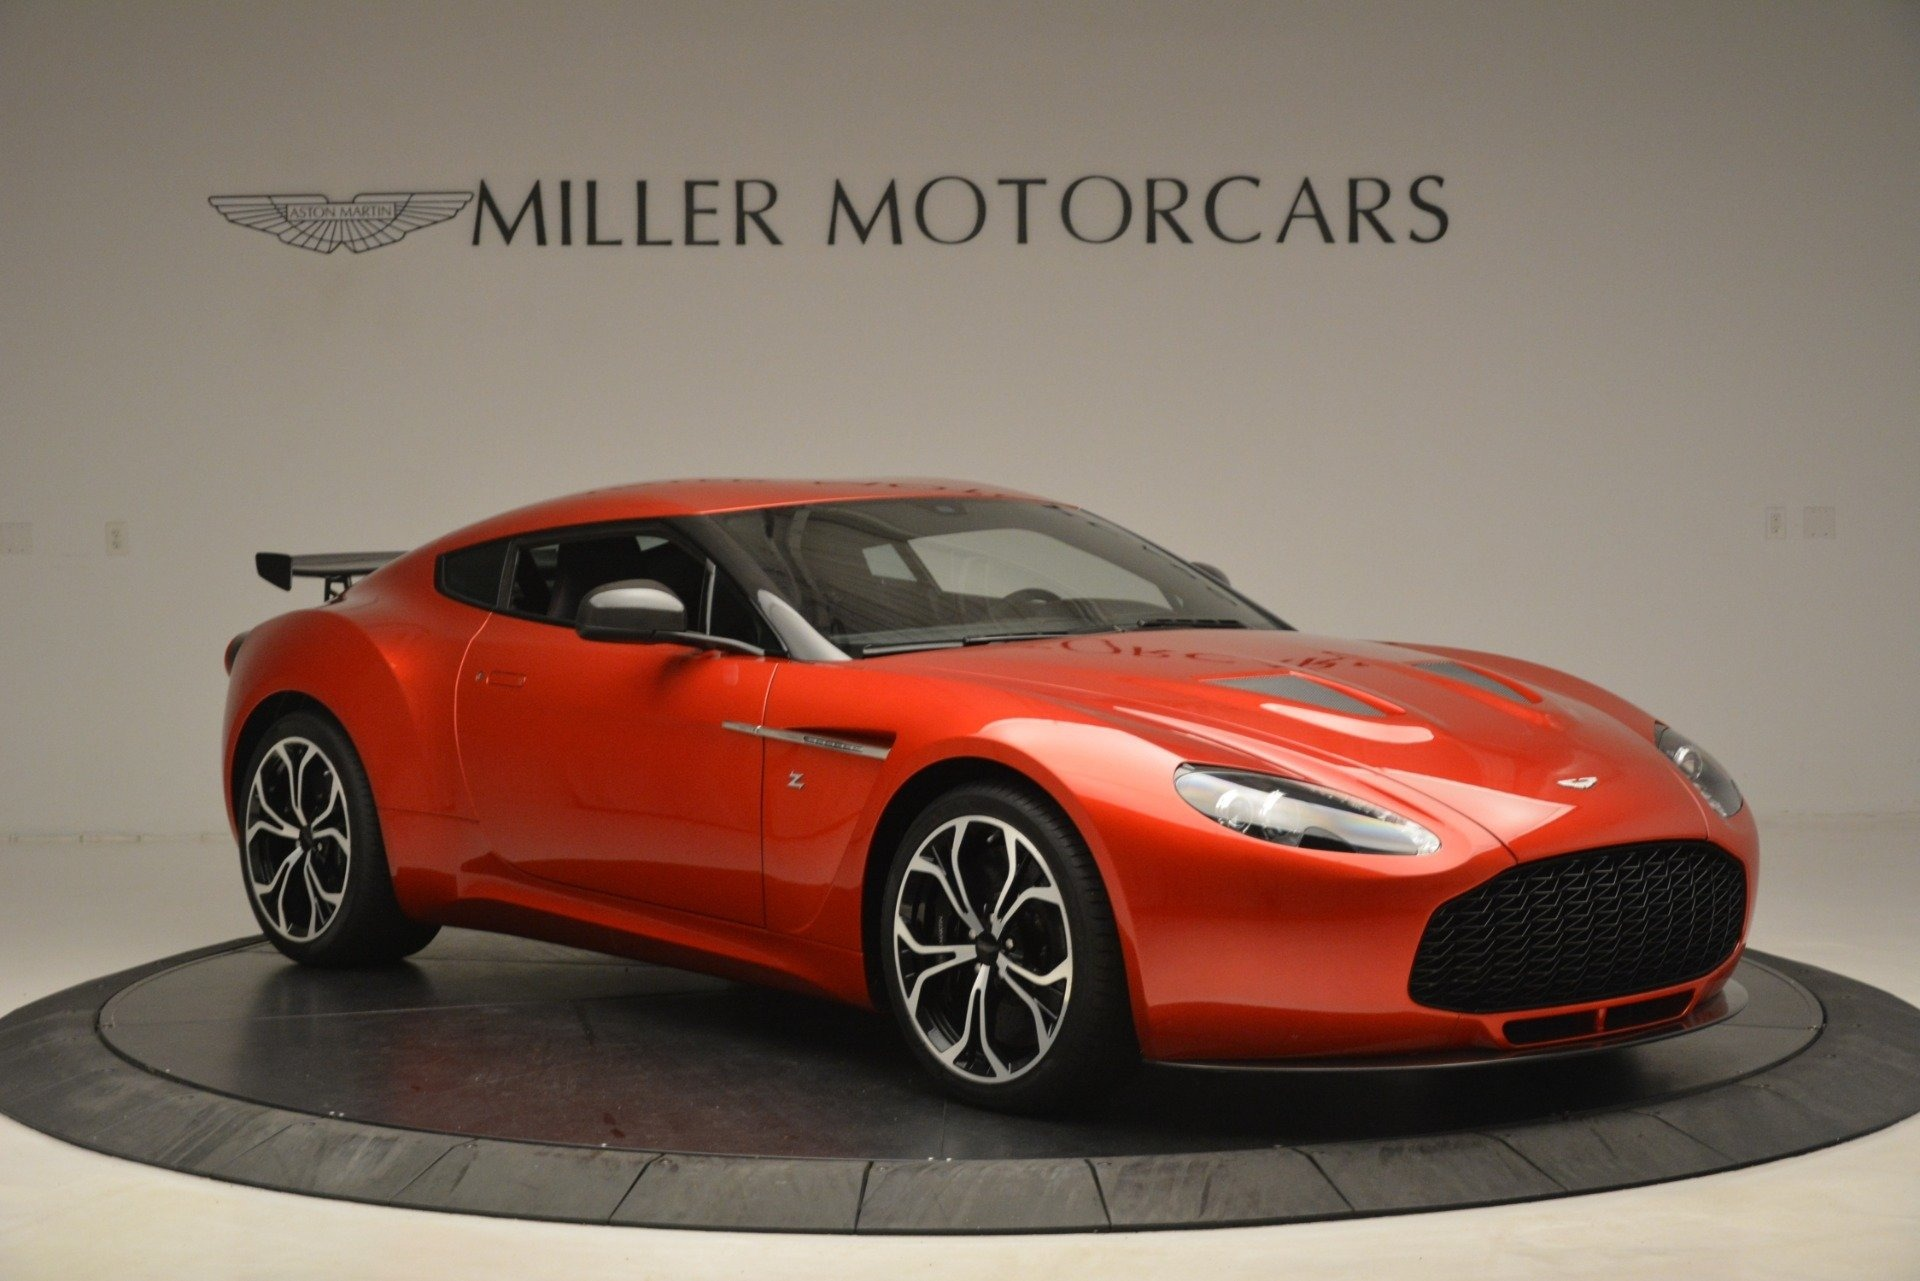 Used 2013 Aston Martin V12 Zagato Coupe For Sale In Westport, CT 3181_p10